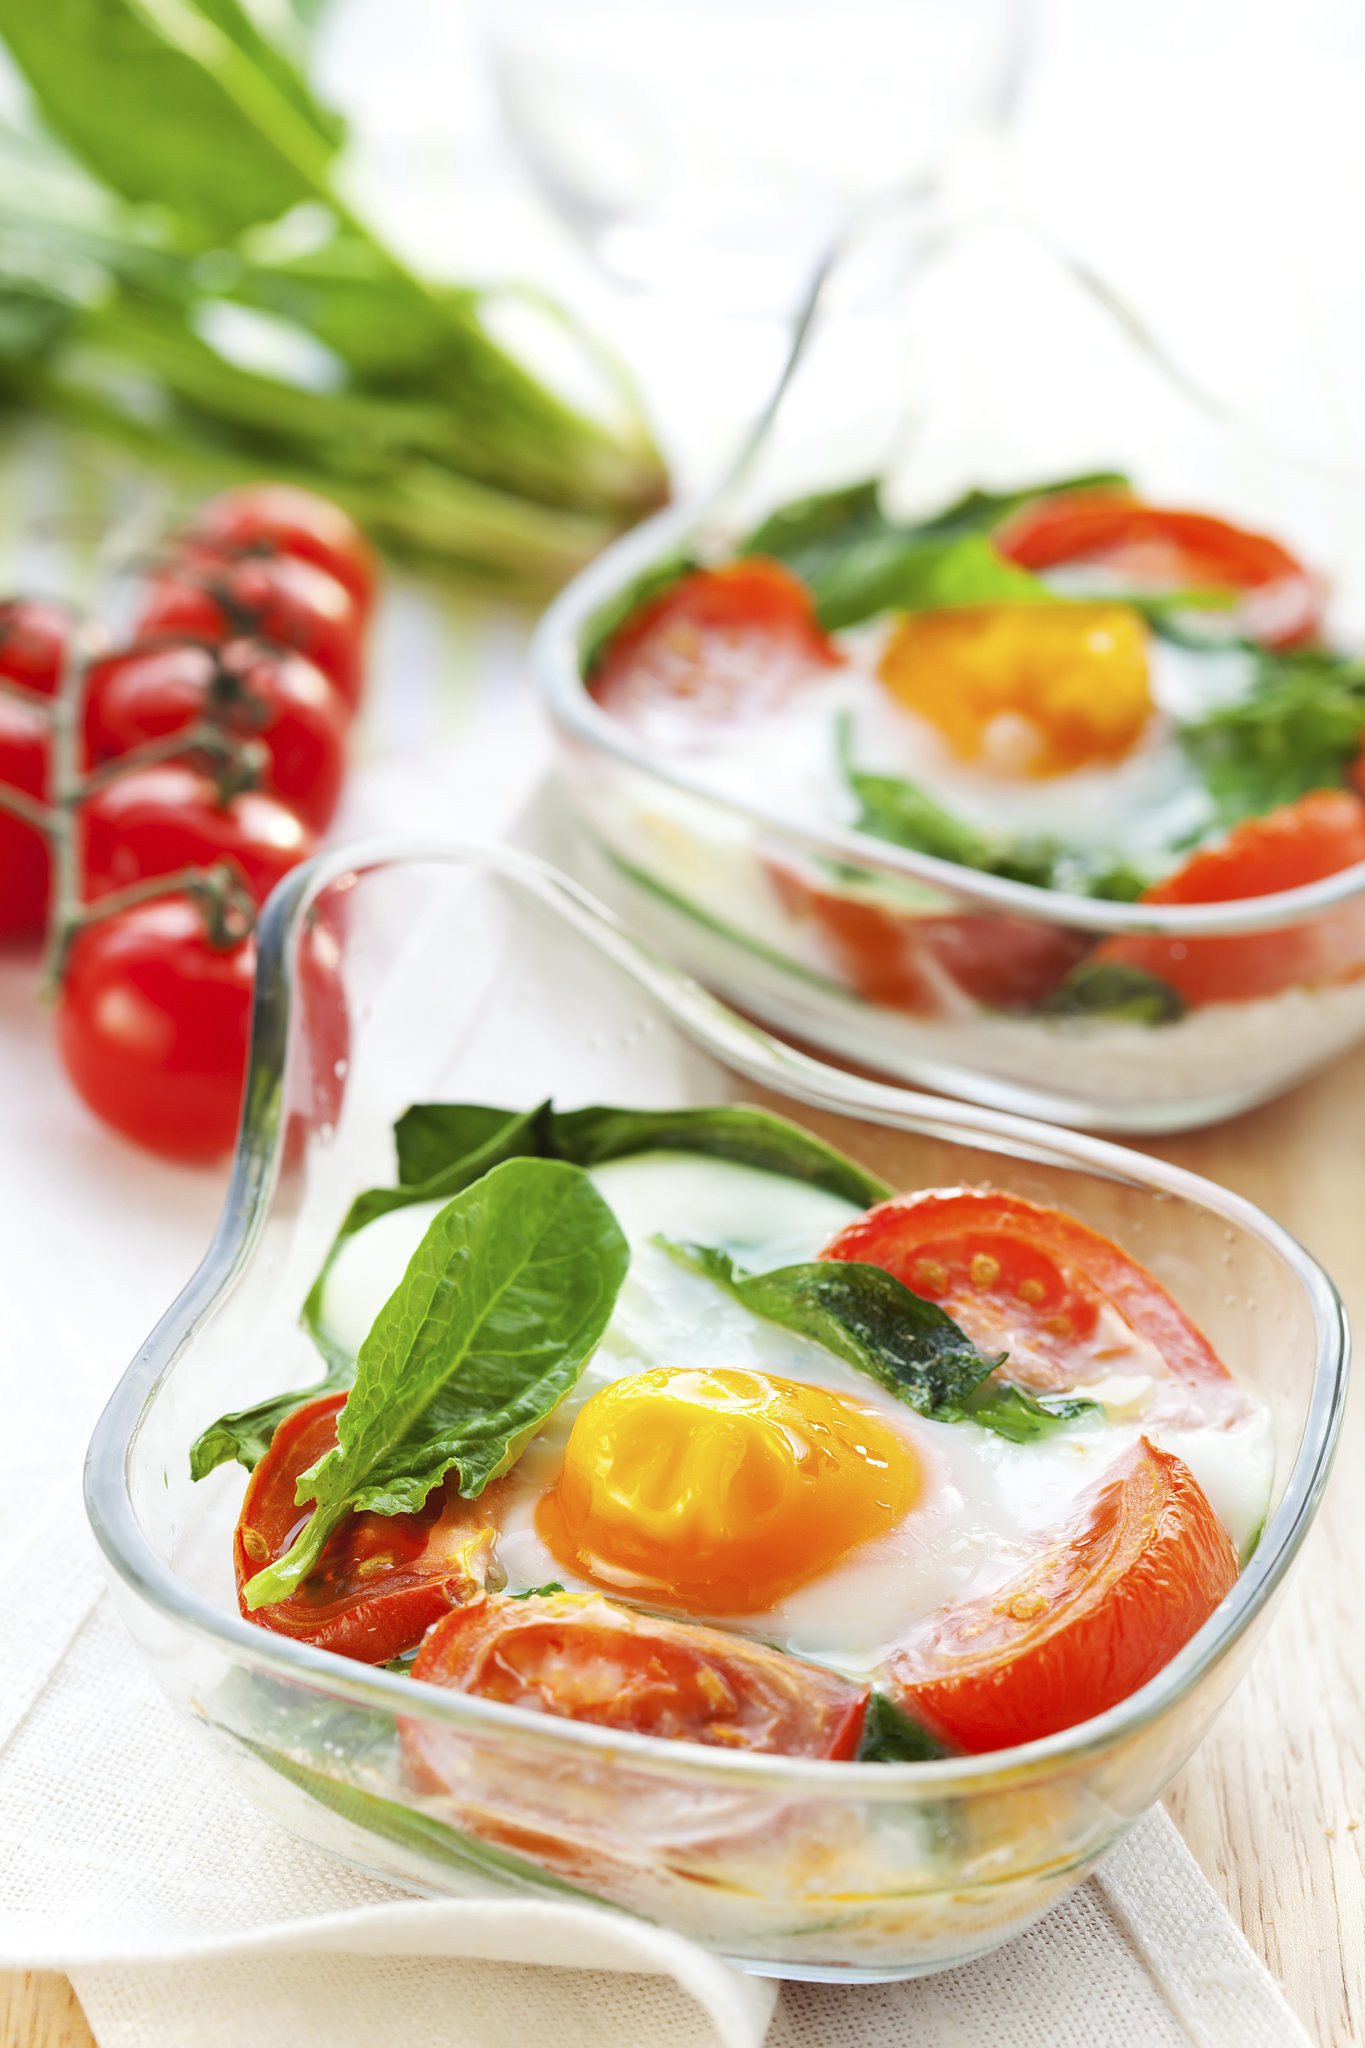 Yummy Breakfast Recipes  50 High Protein Breakfasts That Are Healthy And Delicious